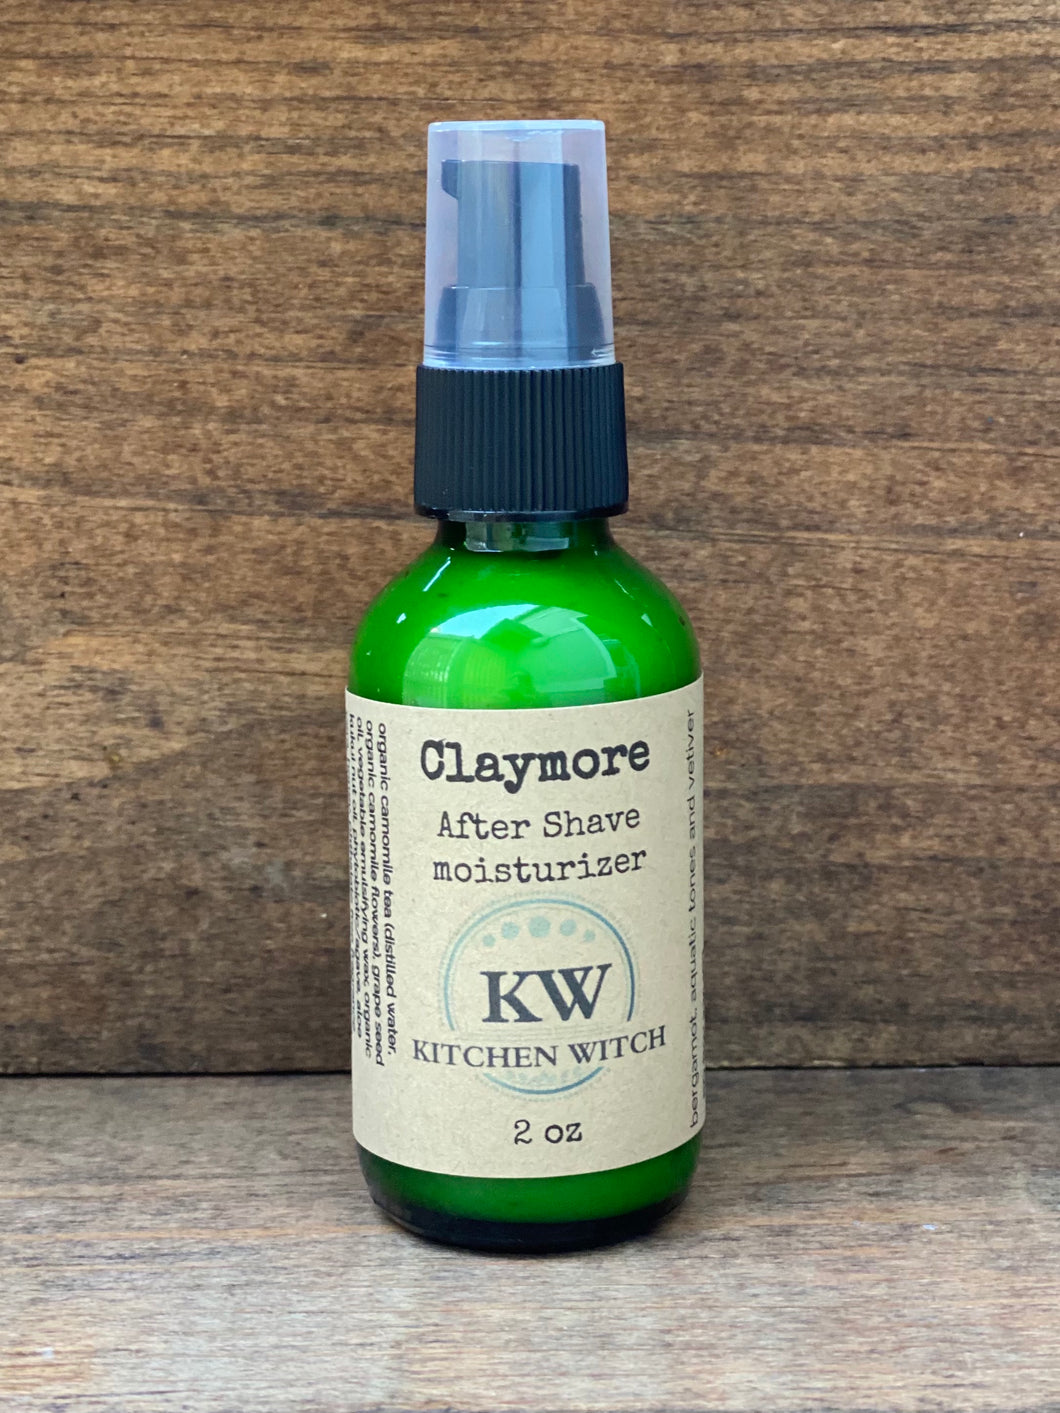 After Shave Moisturizer with hyaluronic acid